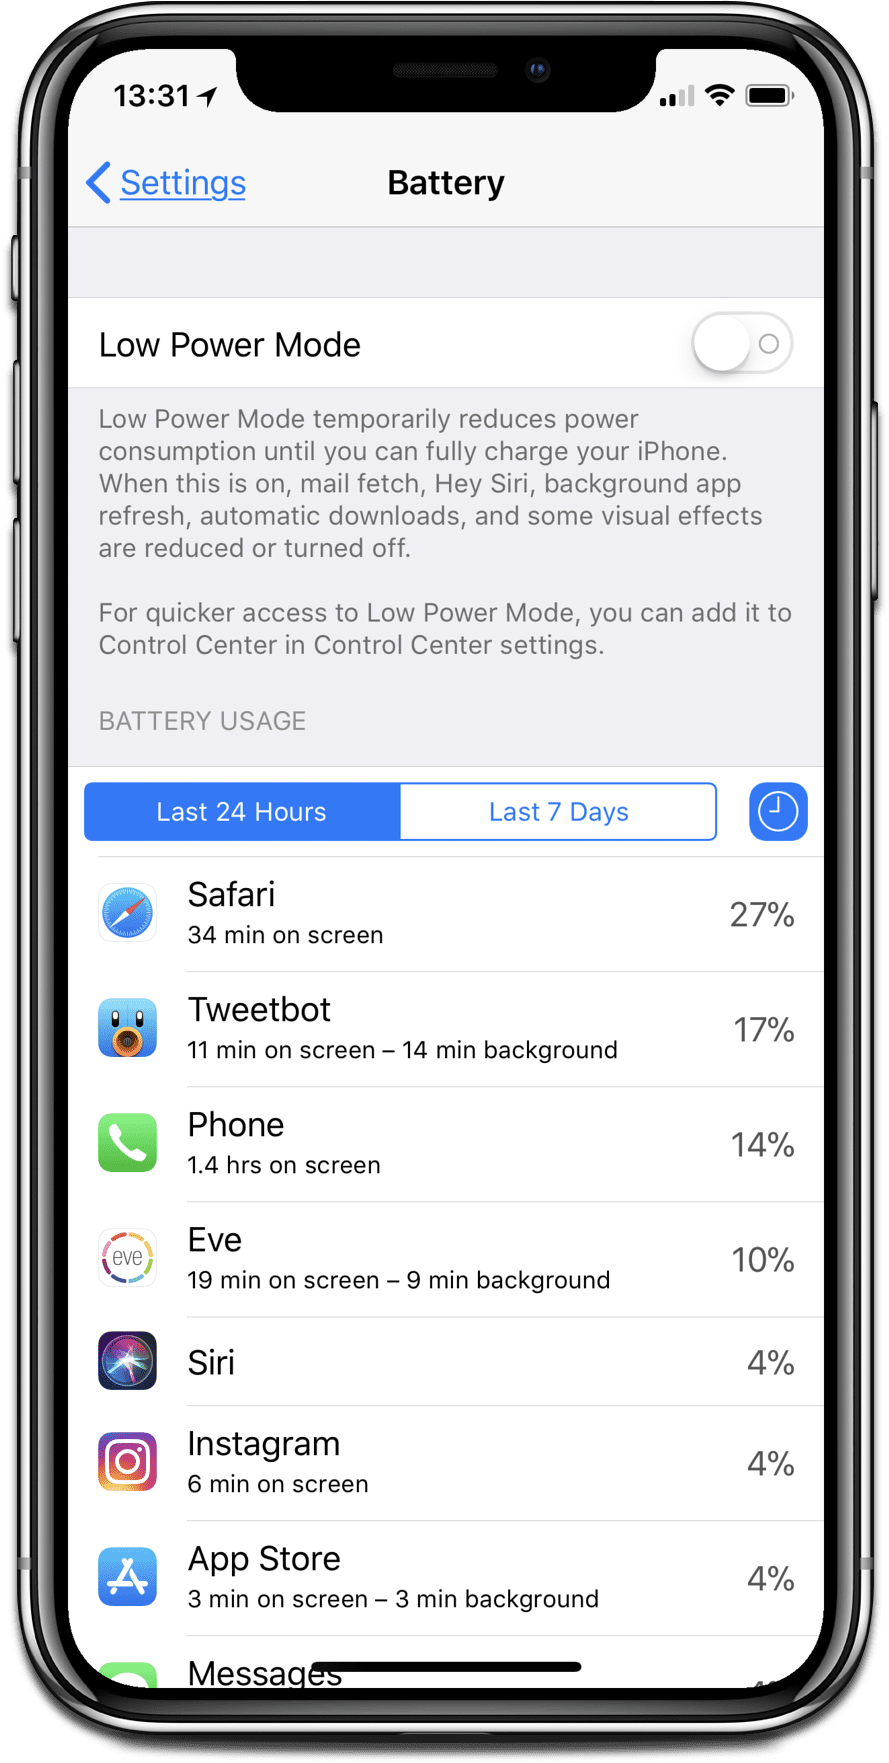 iPhone X troubleshooting tip: Look at the battery screen to see apps that use a lot of energy.